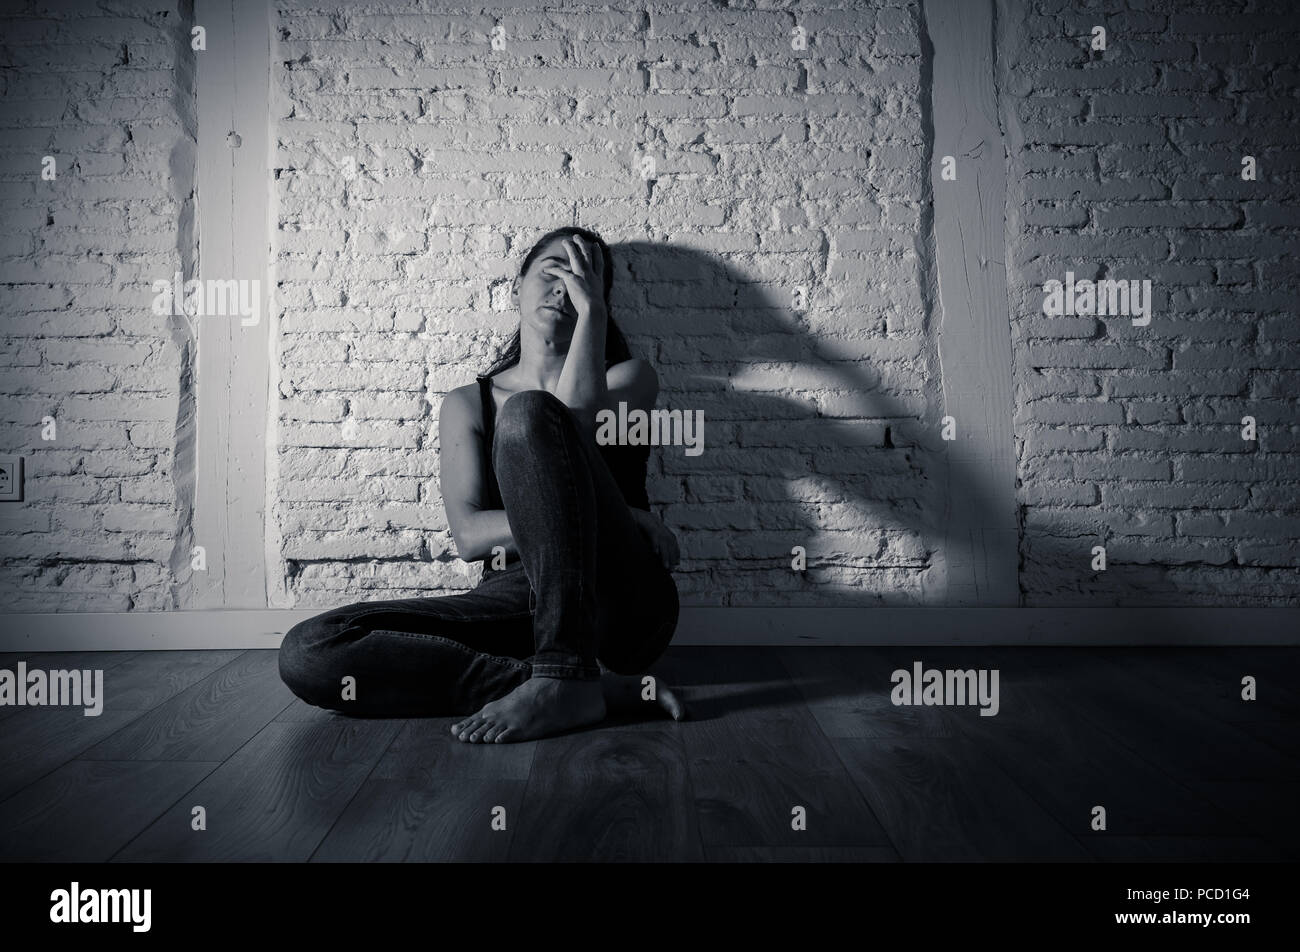 young devastated depressed woman crying sad feeling hurt sufferingyoung devastated depressed woman crying sad feeling hurt suffering depression in sadness emotion in pain and desperate expression loneliness, depress